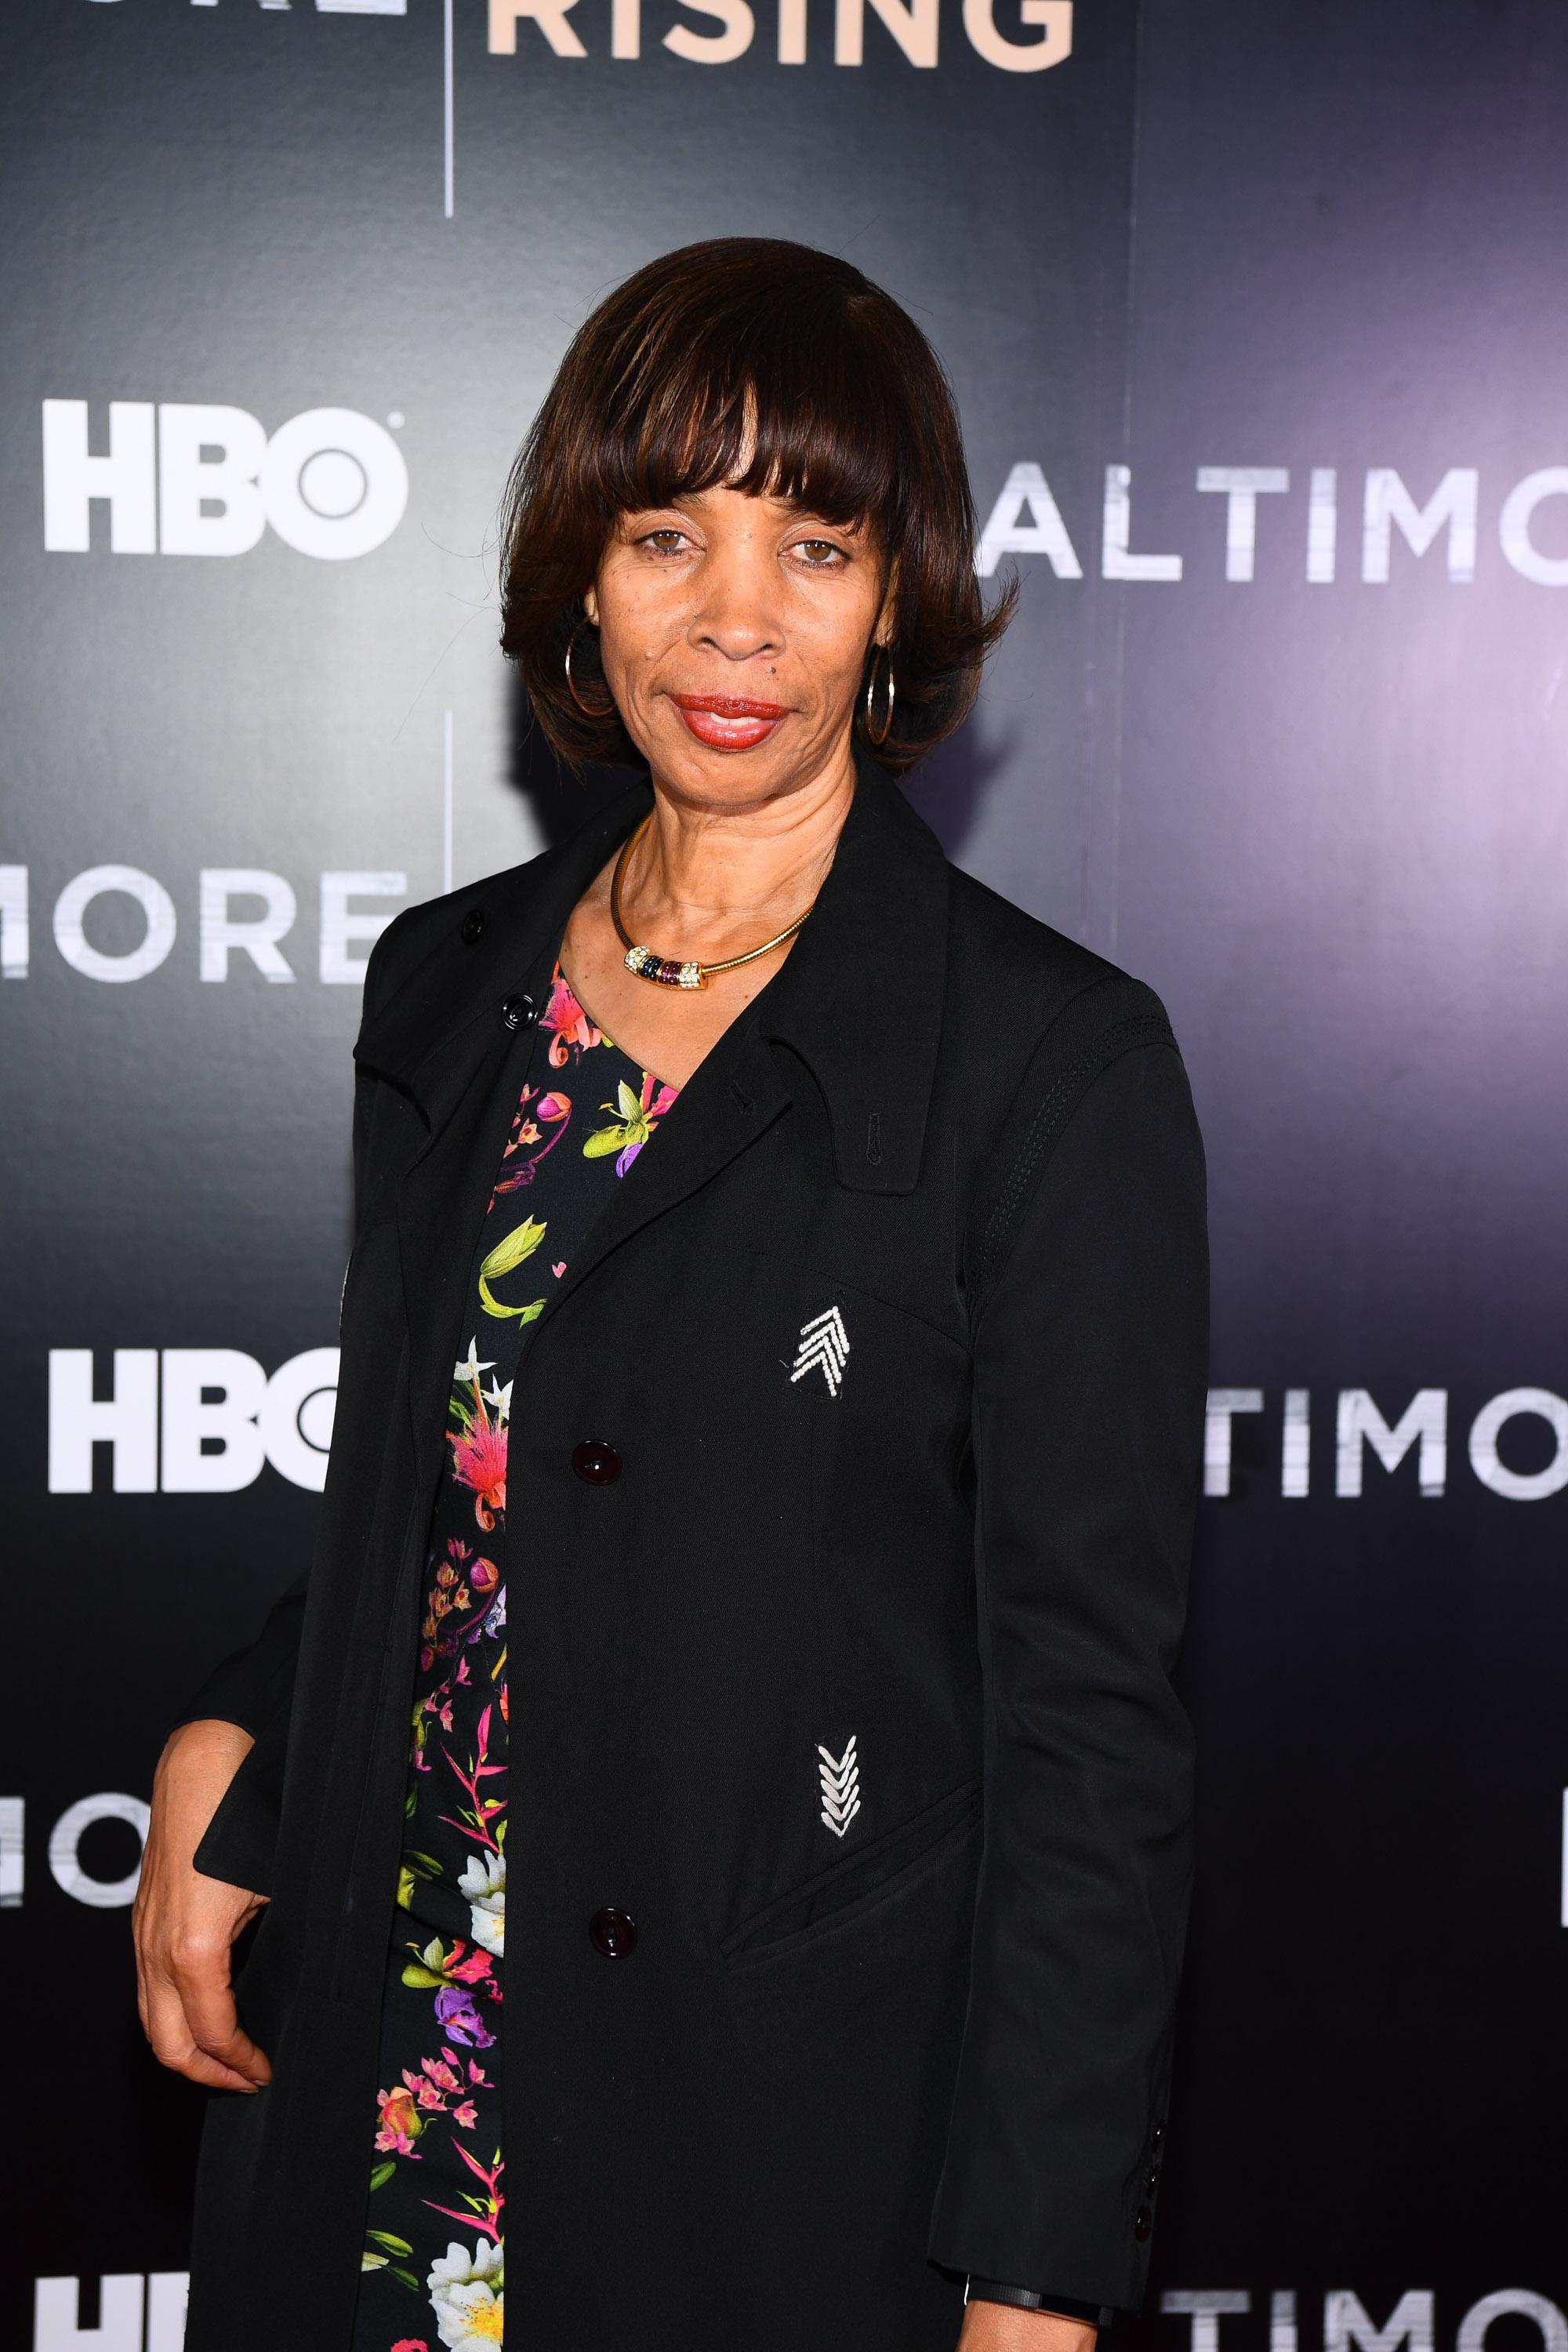 Catherine Pugh poses in front of an HBO background